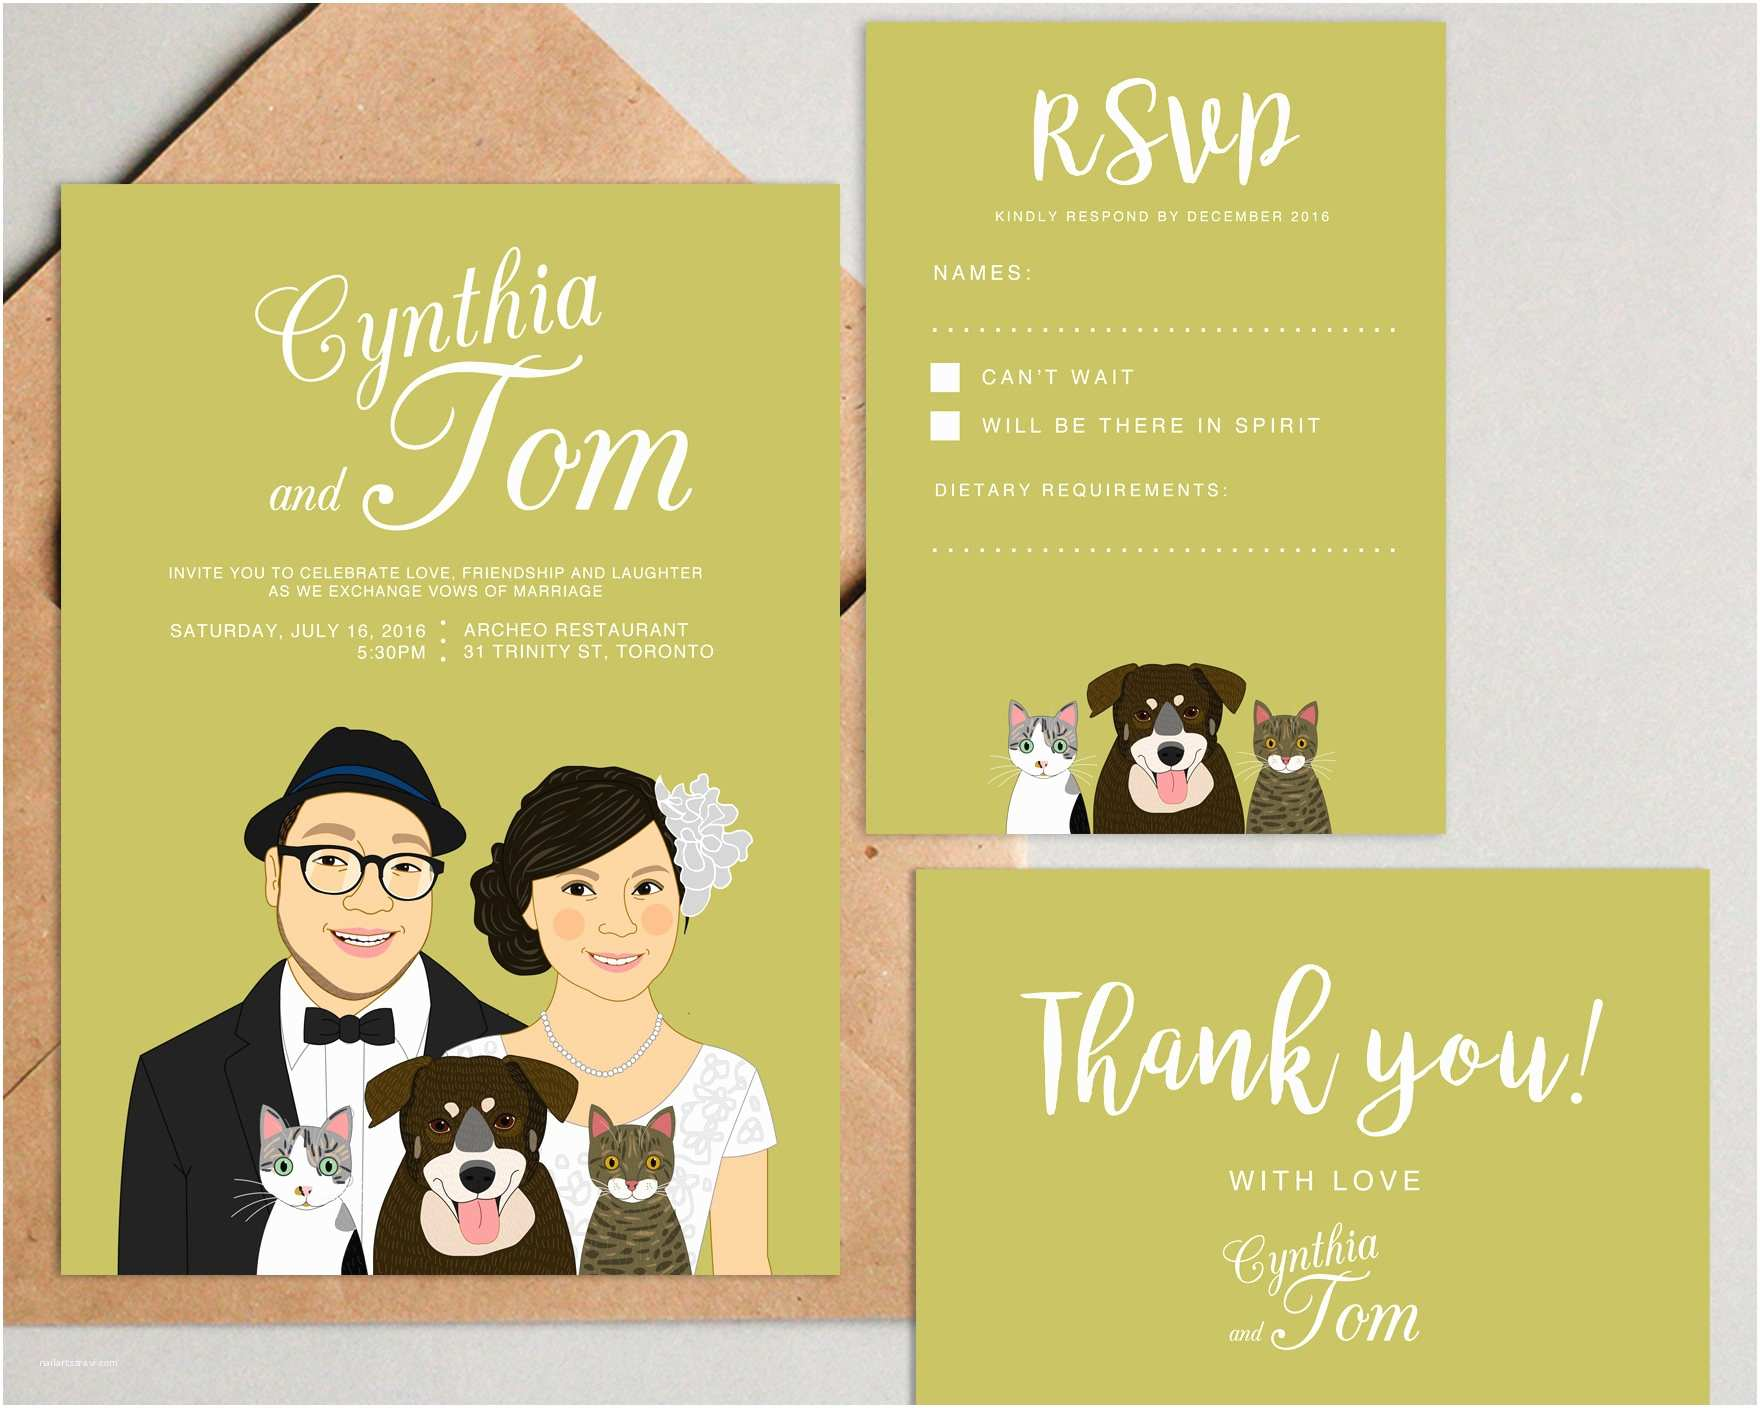 Cool Wedding Invitations 75 Fun Unique Wedding Invitations for Cool Couples